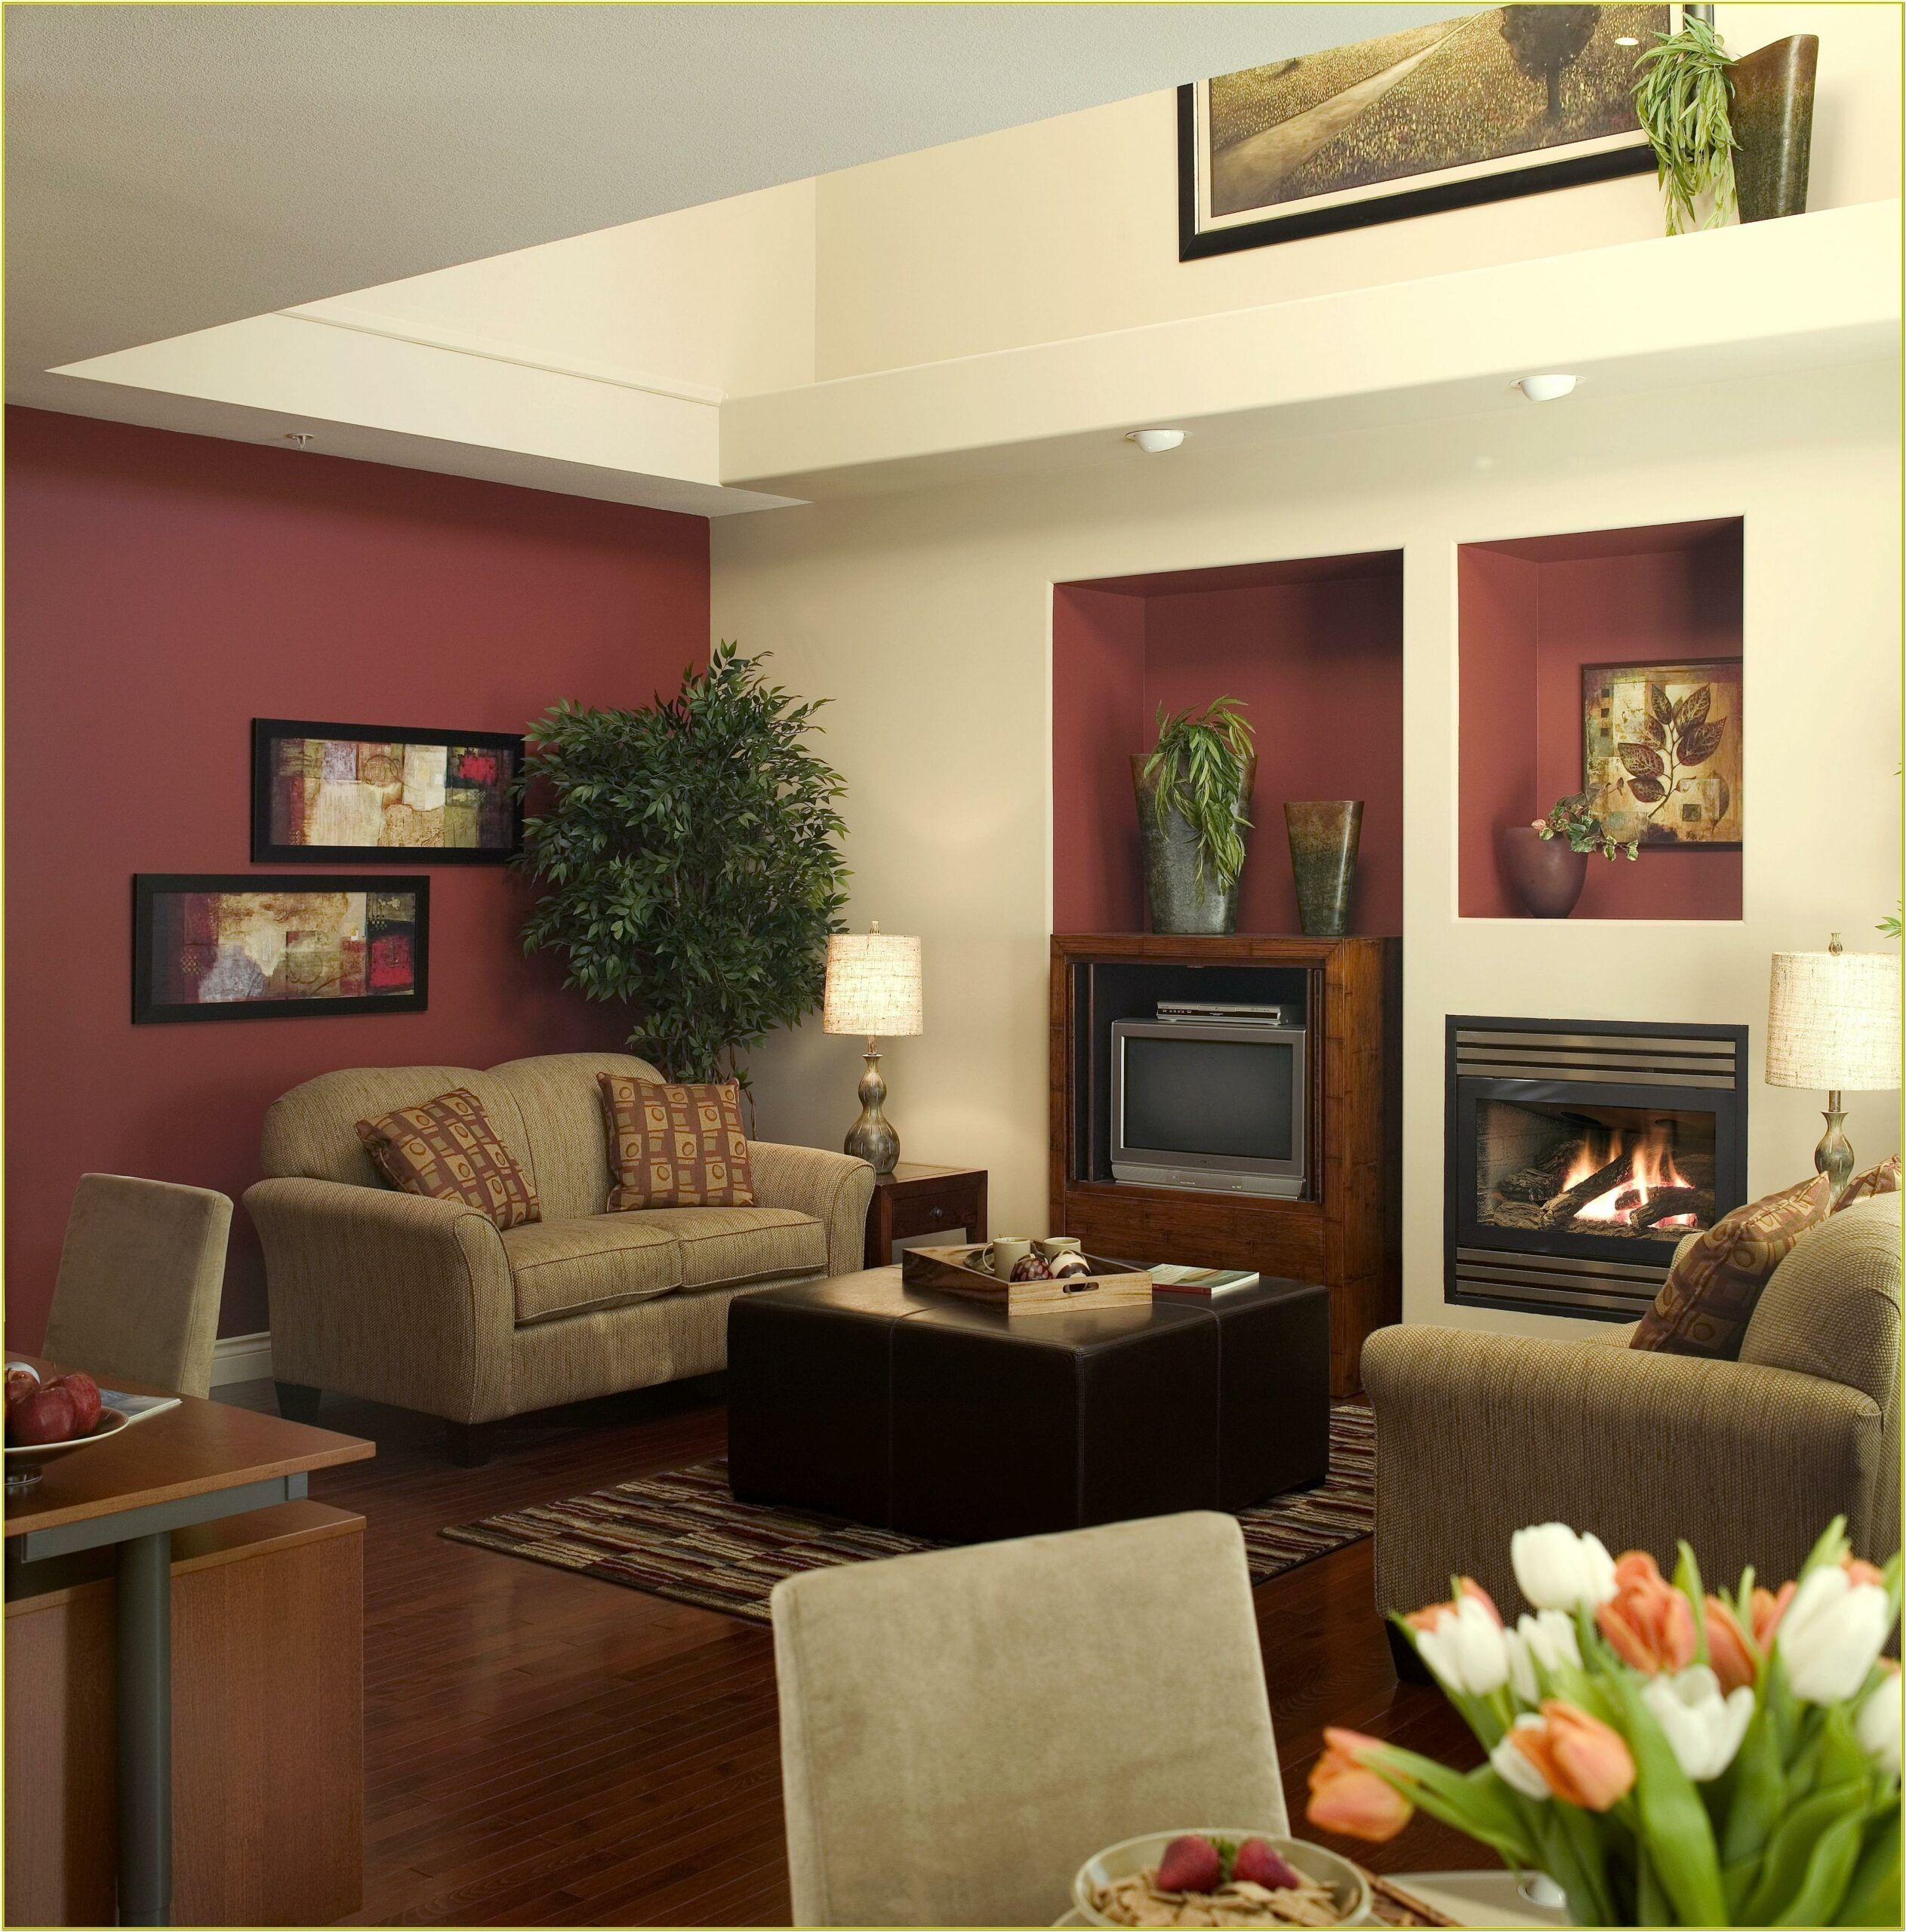 Beige And Burgundy Living Room Ideas In 2020 Burgundy Living Room Beige Living Rooms Living Room Red